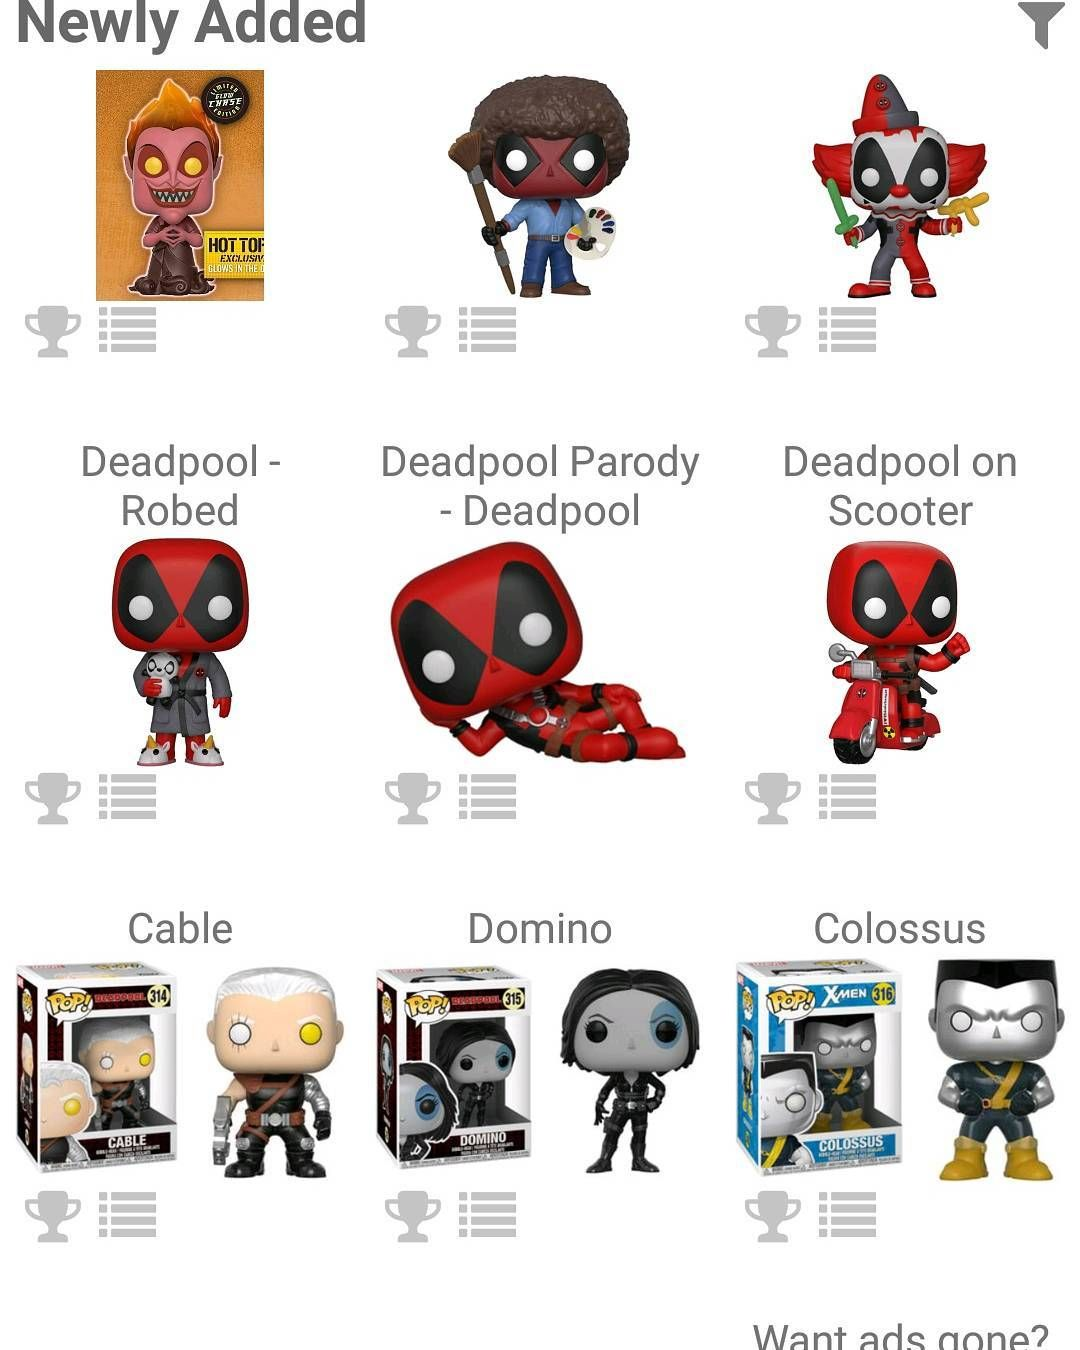 I Really Want These Parody Deadpool Pops I Think They Are Awesome And Can T Wait For Them Funko Funkopop Funkofamily Popfunko Pop Win Funkofanatic Col